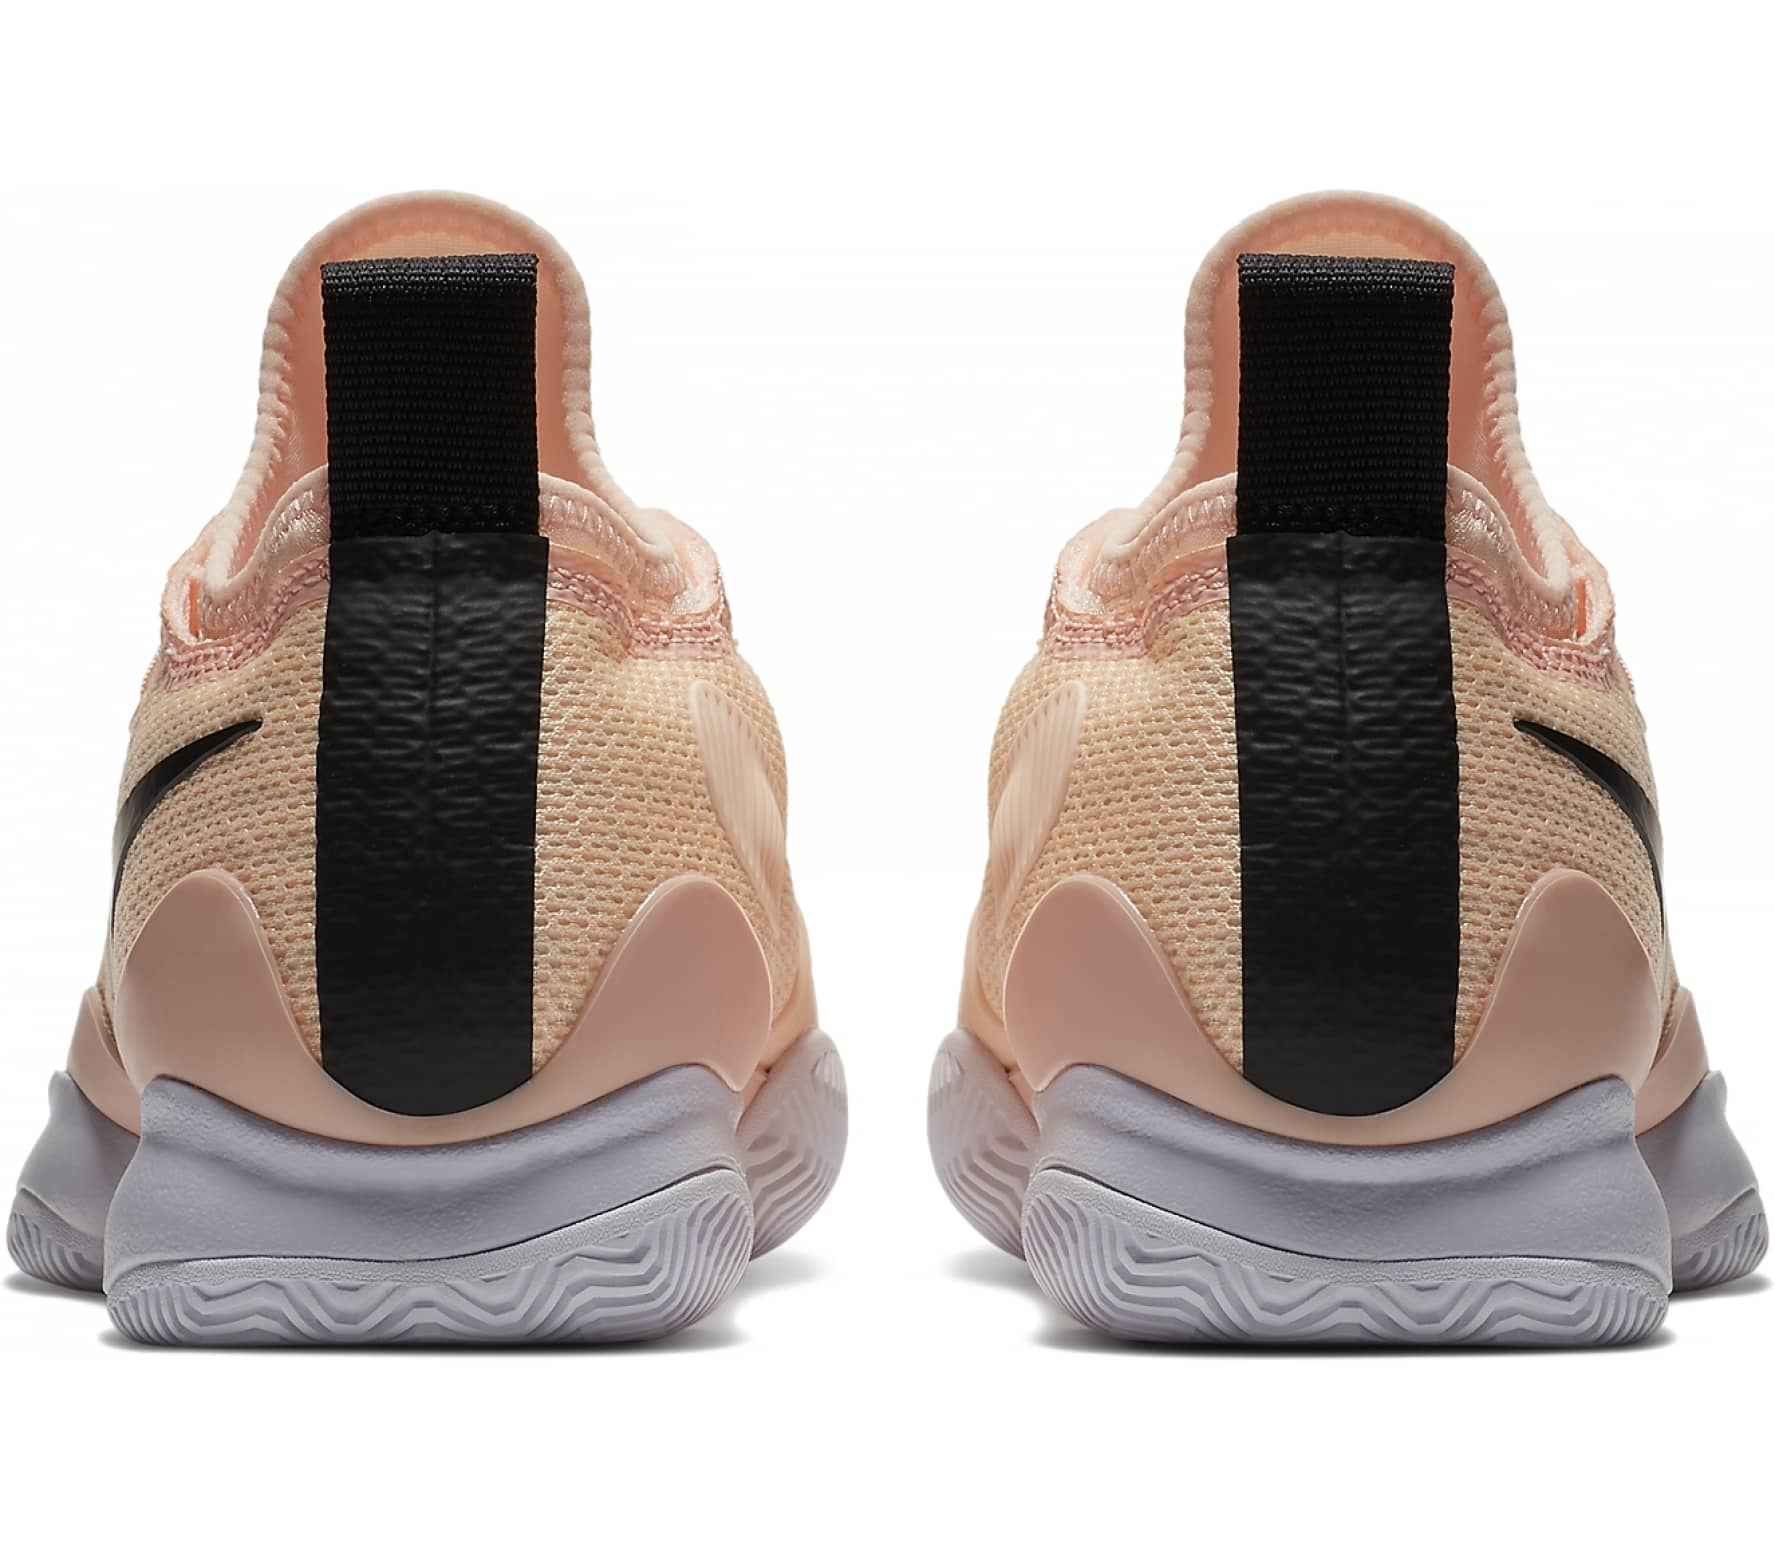 new concept 65cd7 6615a Nike - Air Zoom Ultra React women's tennis shoes (pink) Køb online ...